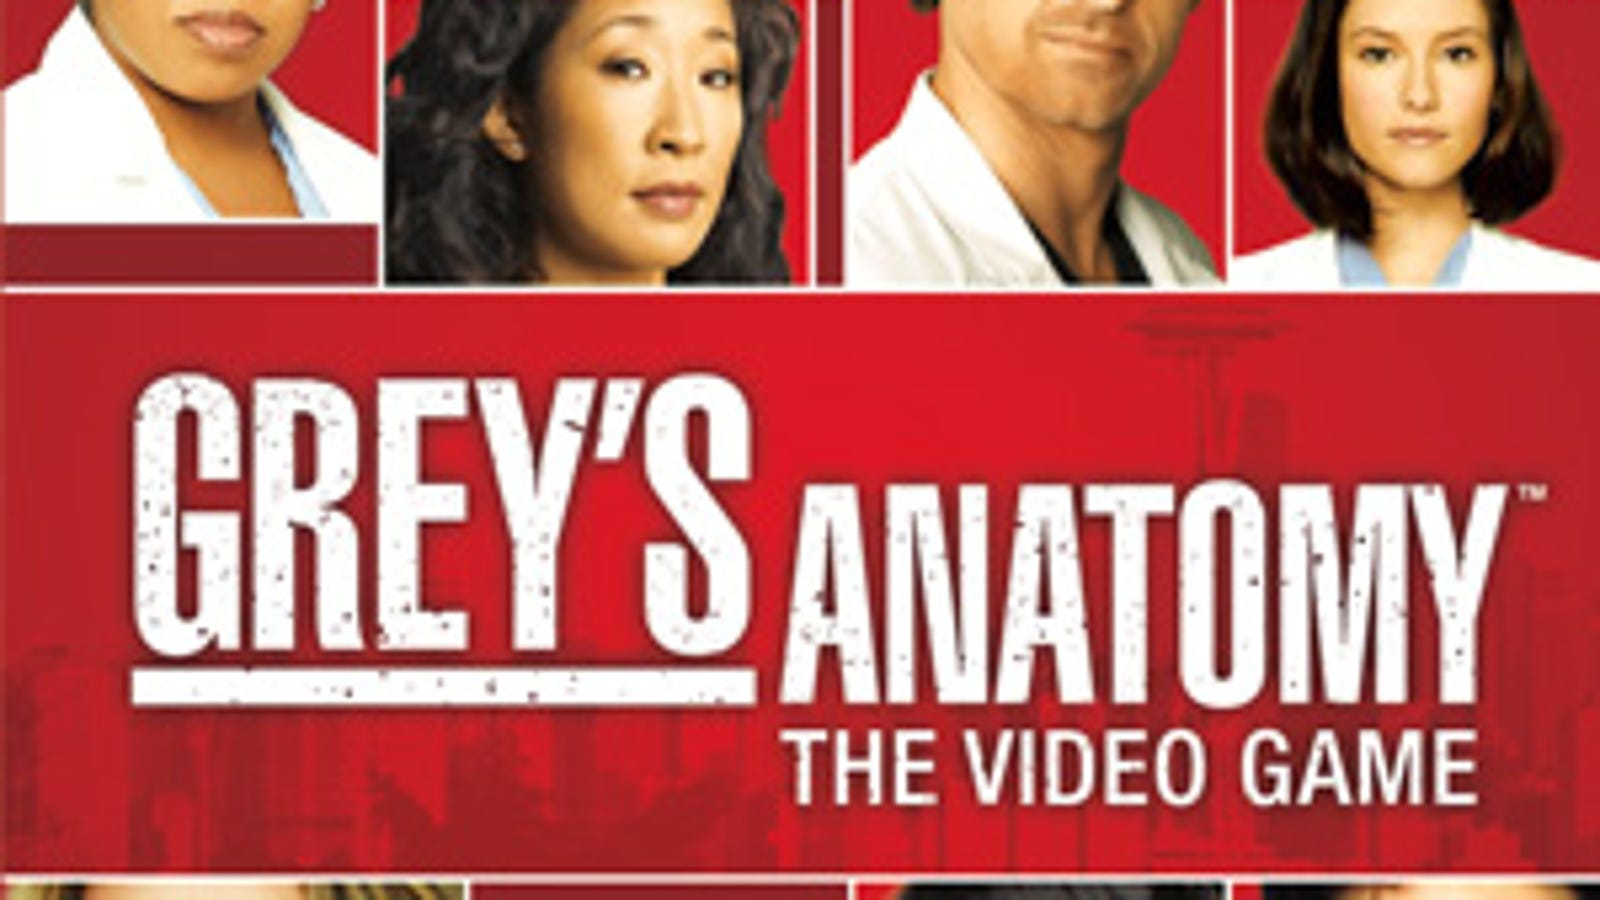 Ubisoft Makes Greys Anatomy Game Official